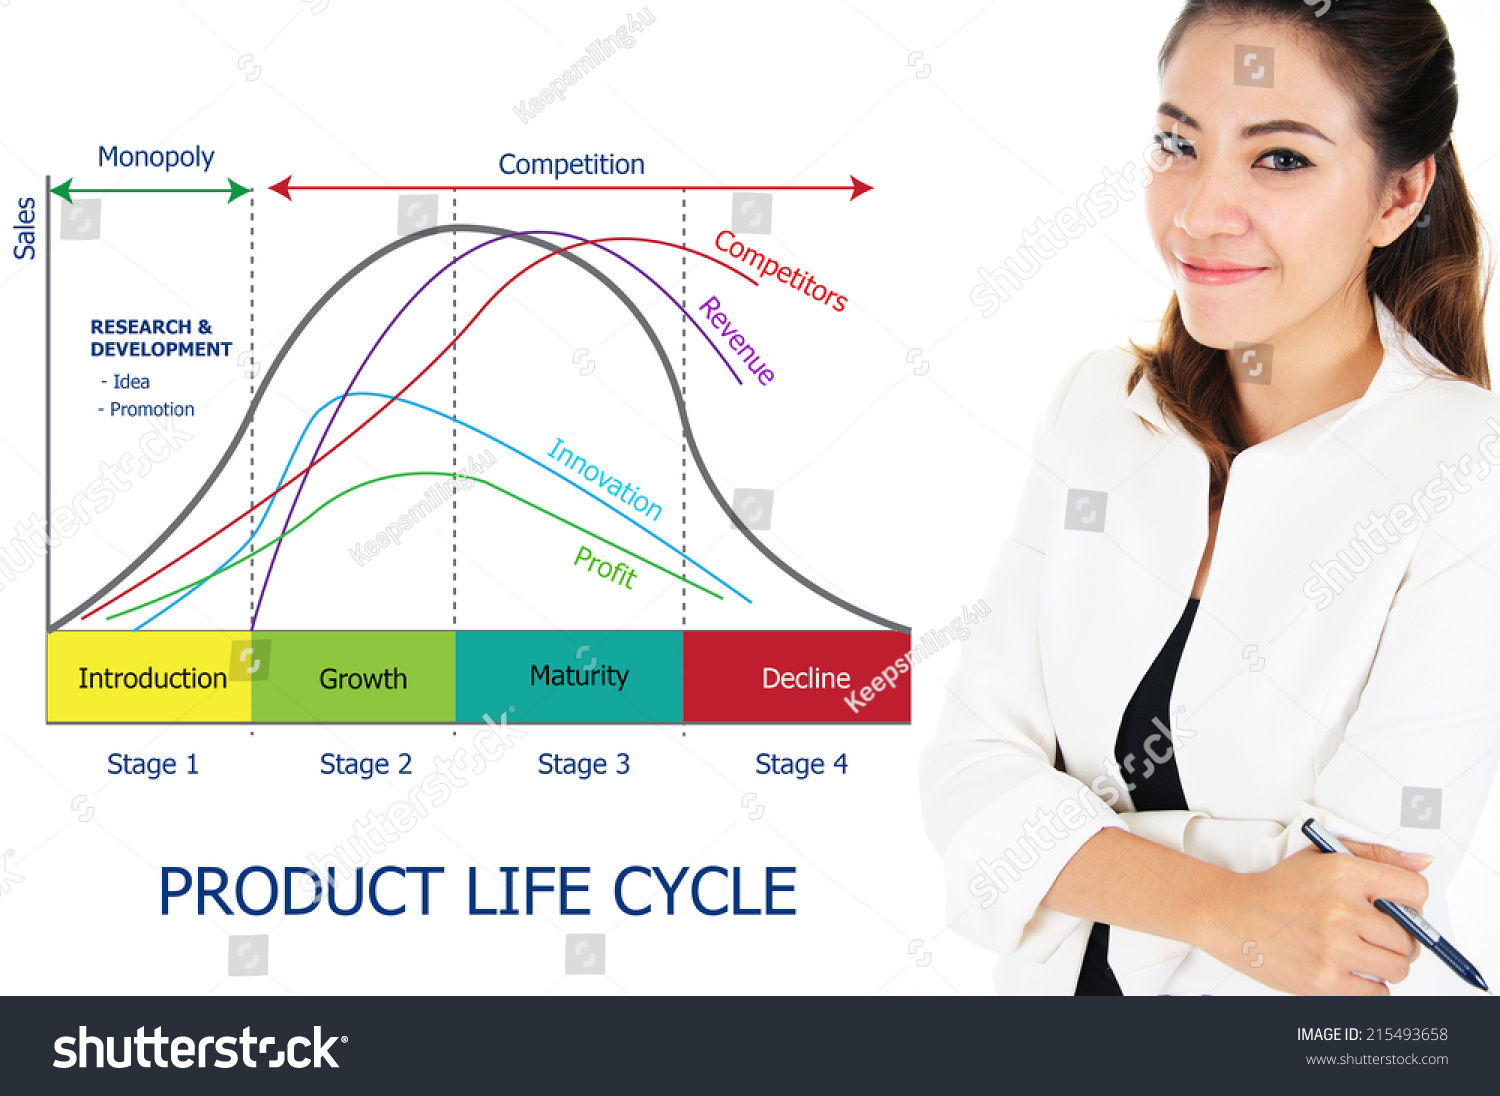 Businesswoman With Stage Of Product Life Cycle Chart Business Concept Stock Photo 215493658